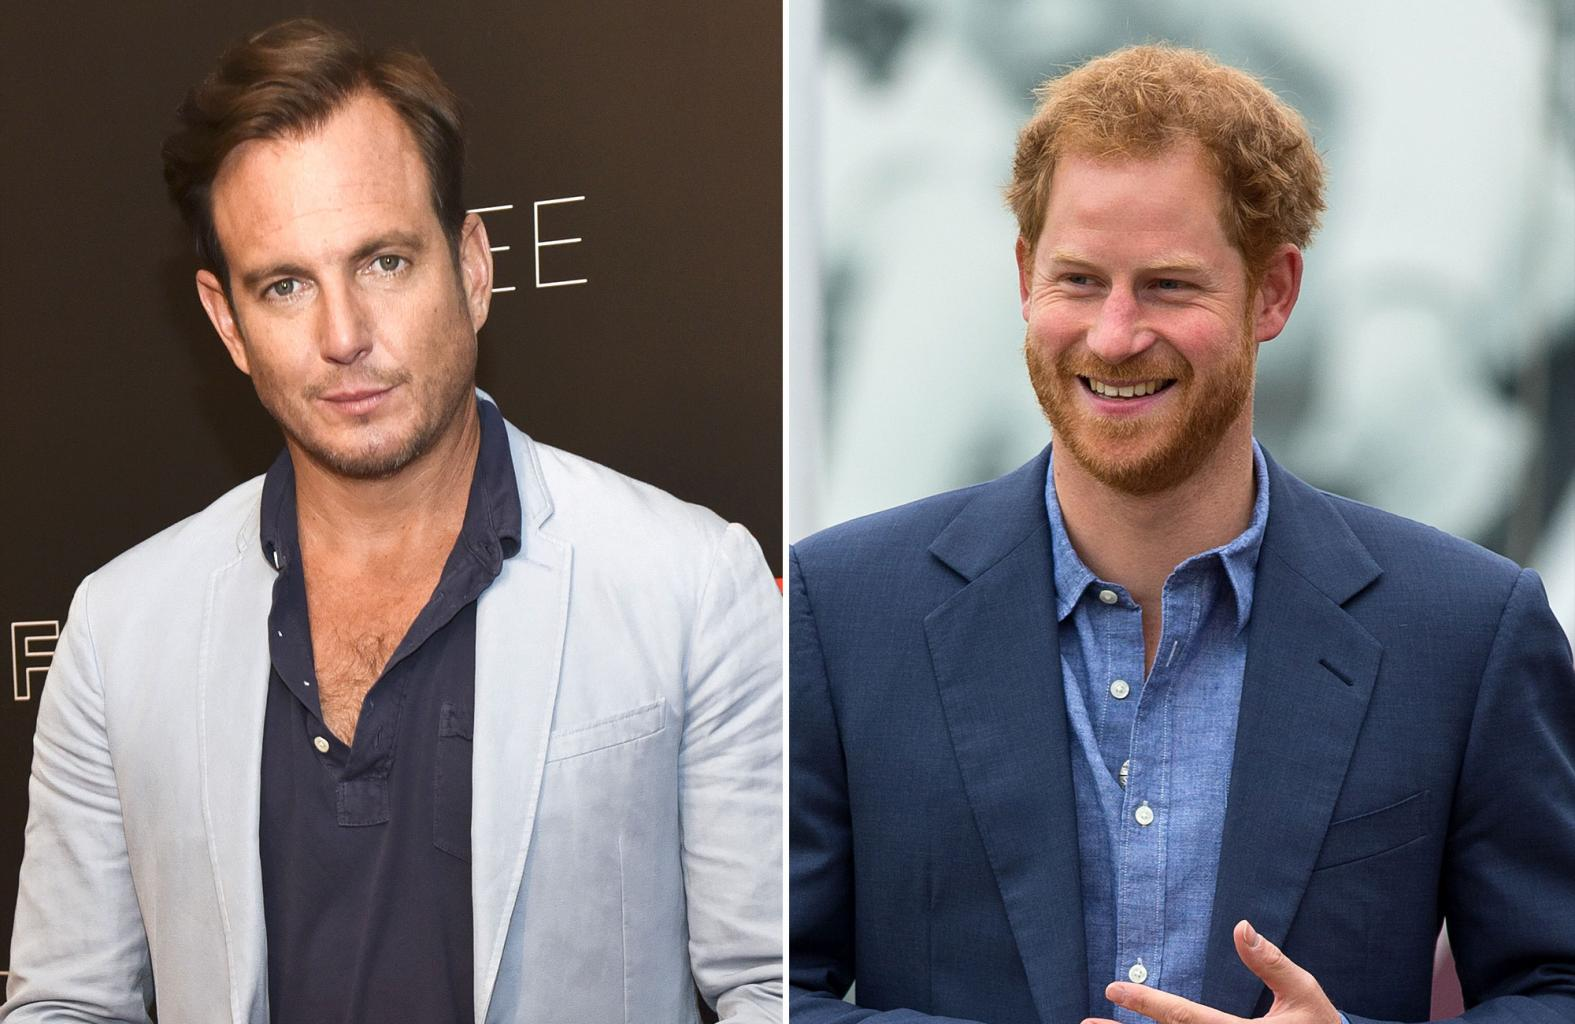 Will Arnett and Prince Harry Are Apparently Texting Buddies